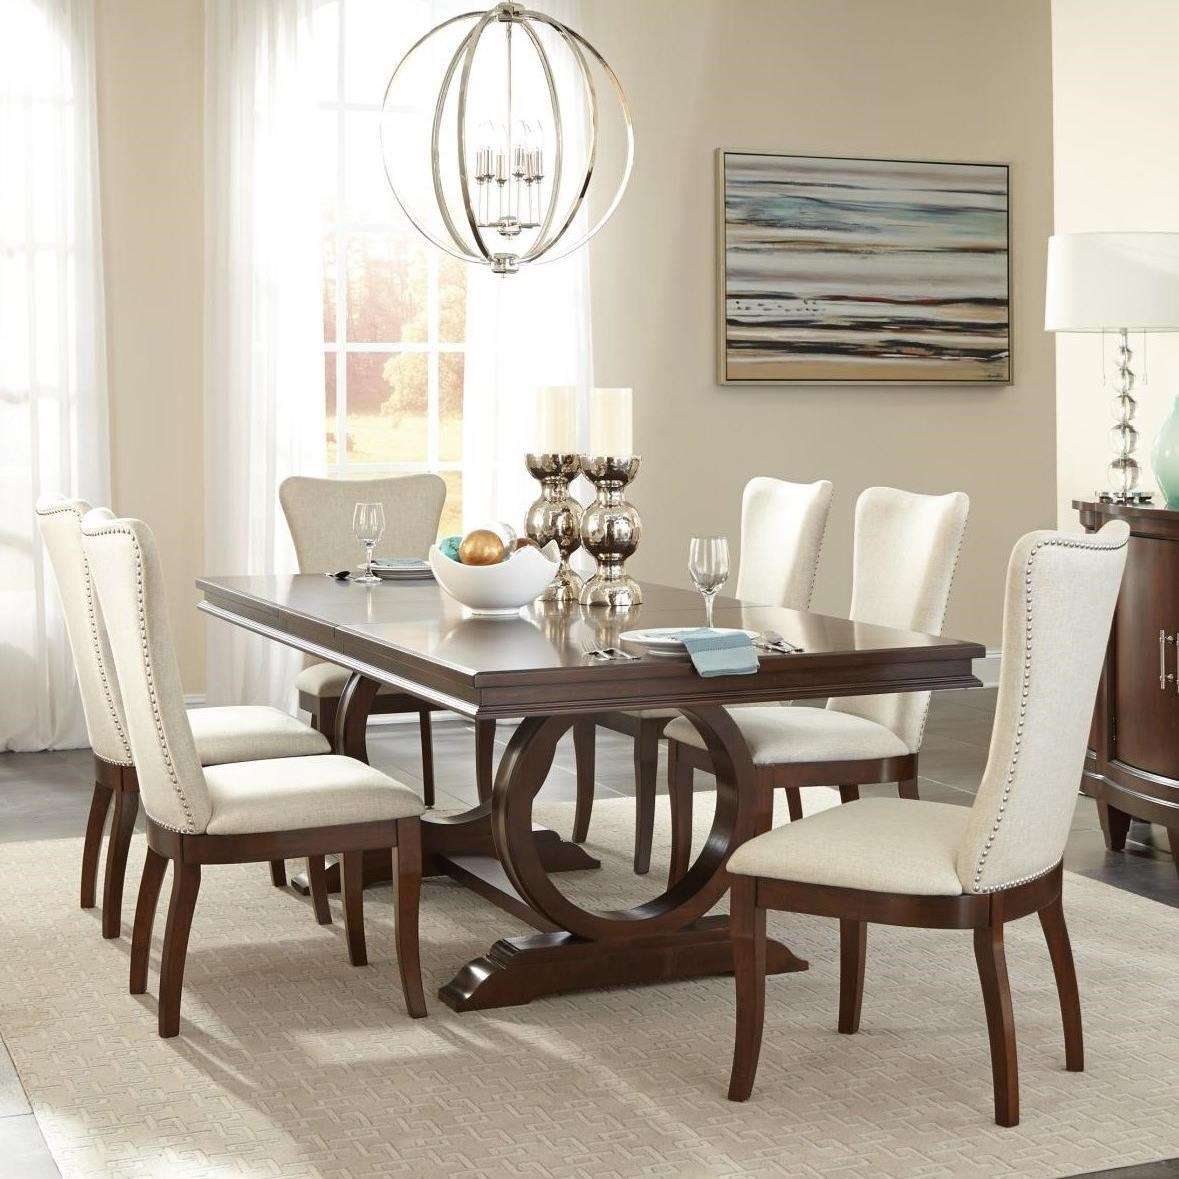 Oratorio 5 Piece Dining Set by Homelegance at Darvin Furniture